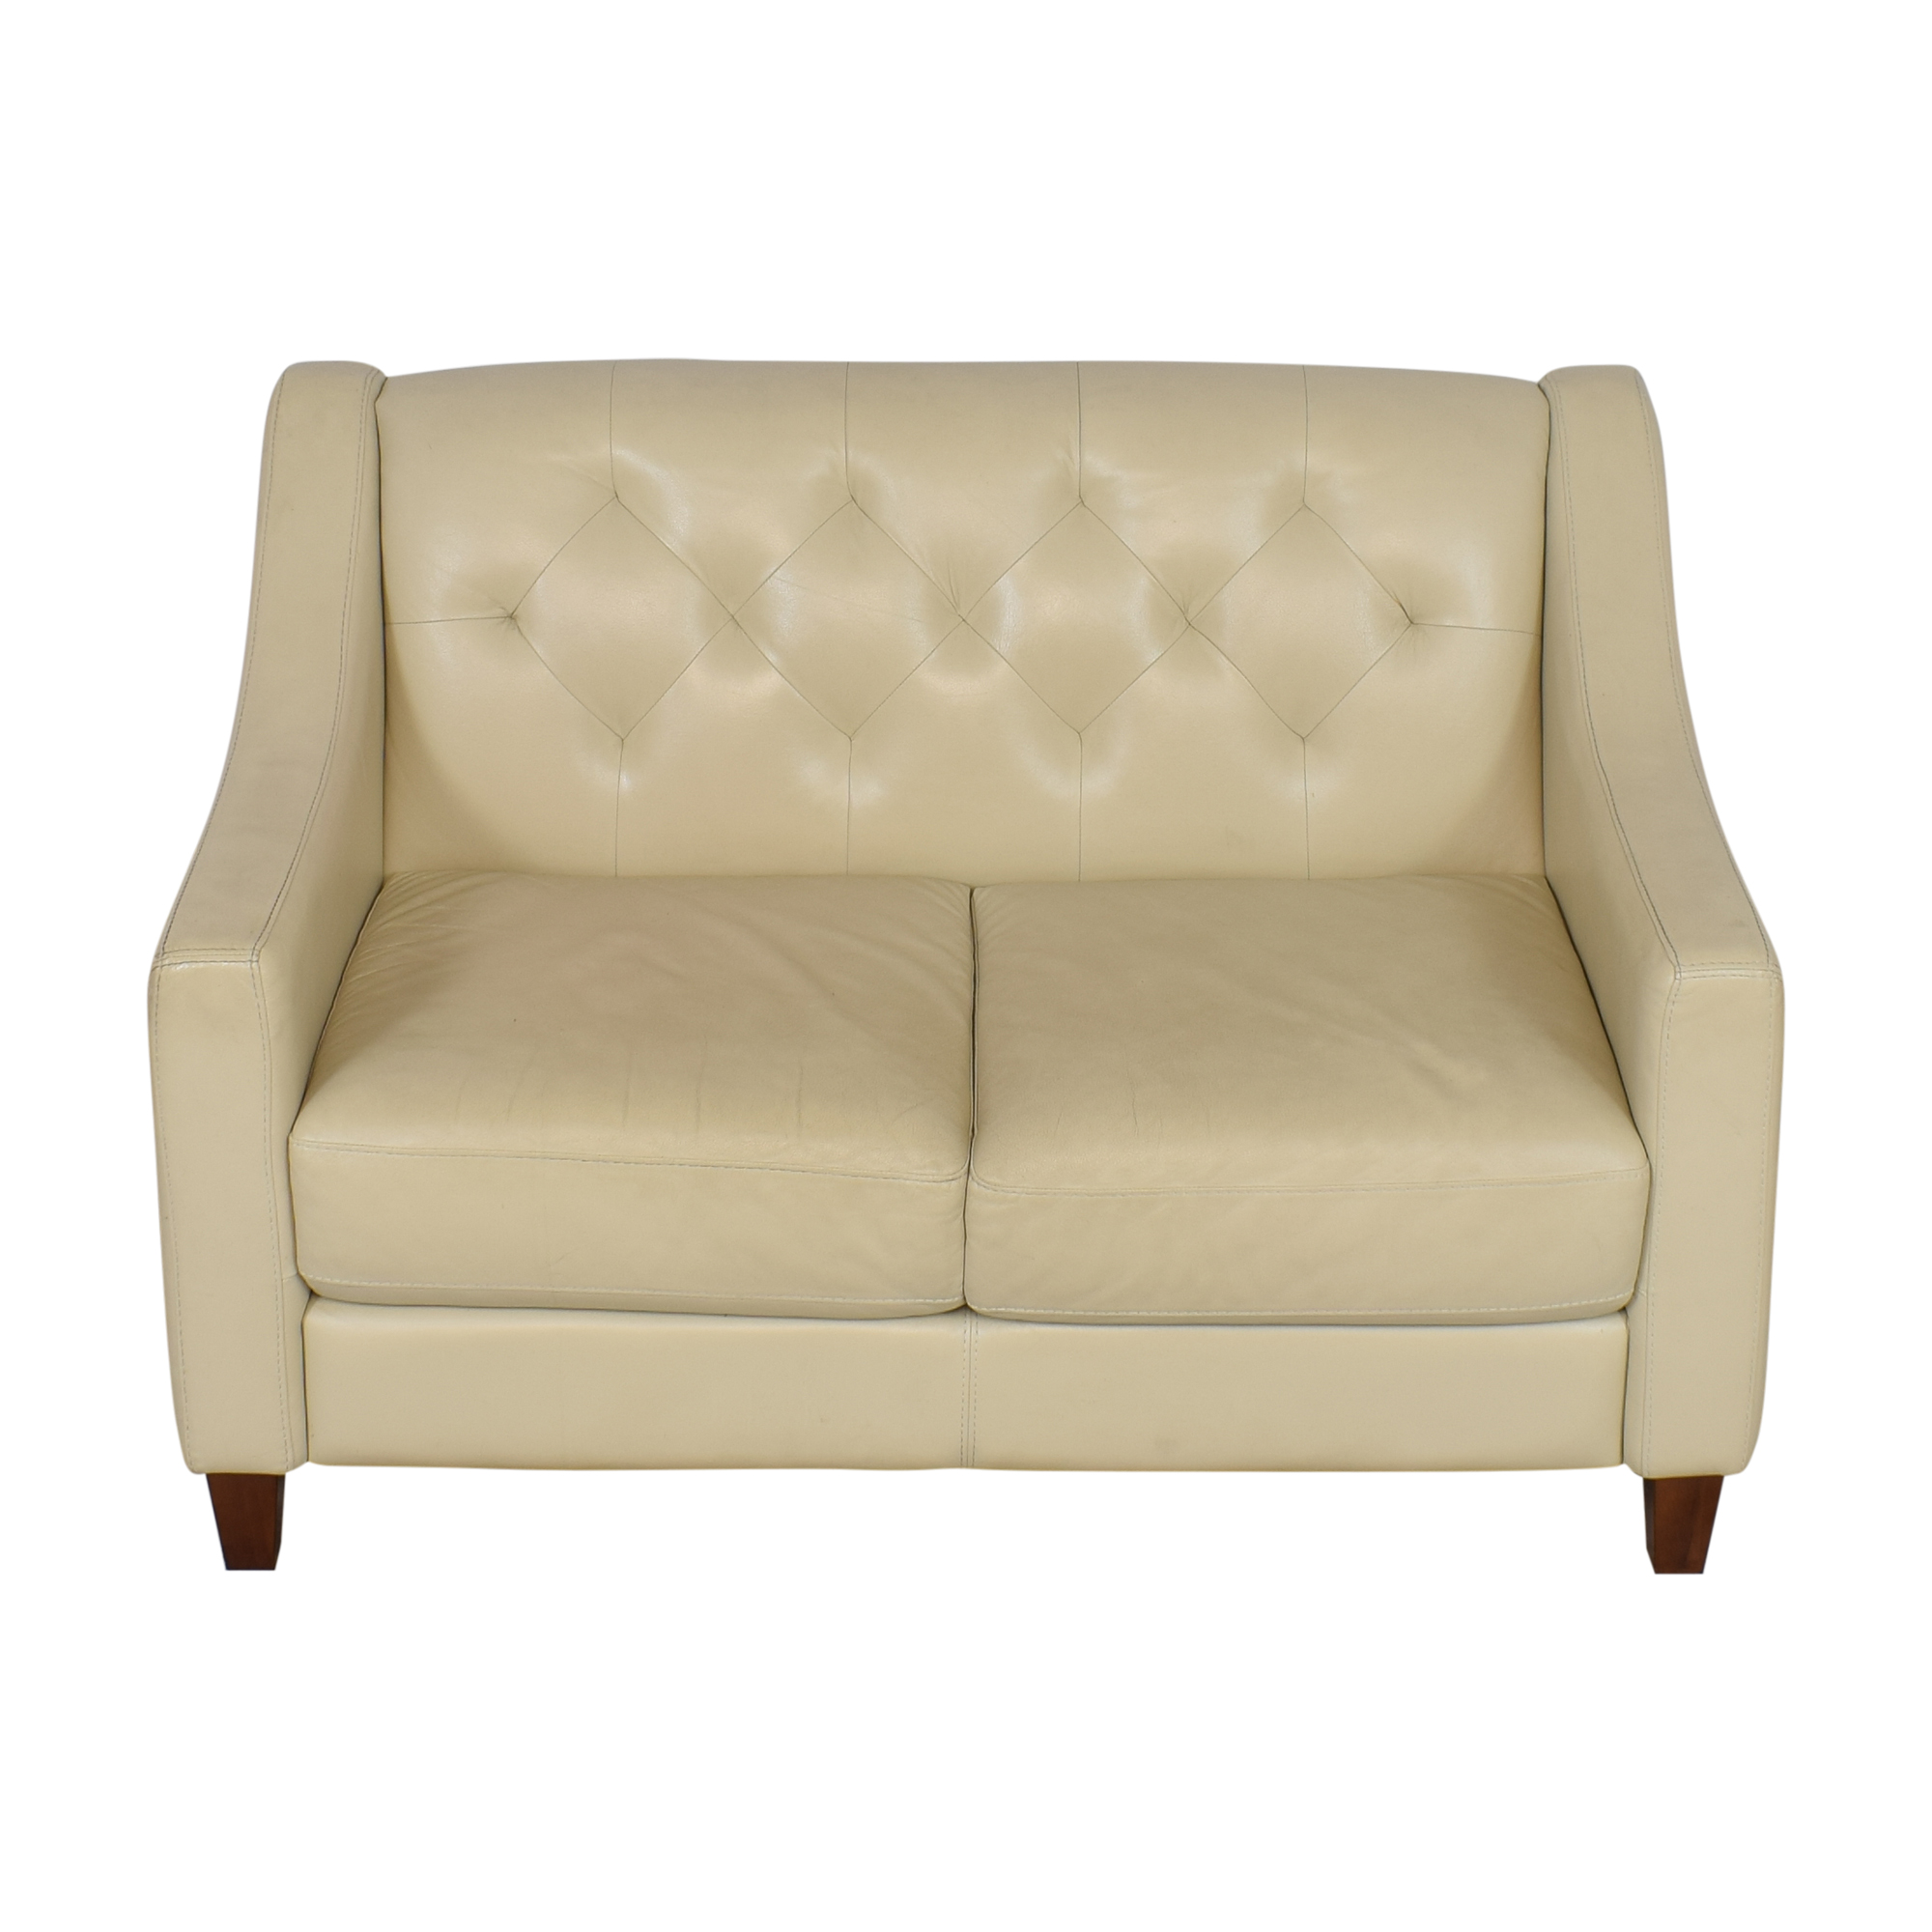 Chateau d'Ax Slope Arm Tufted Loveseat Chateau d'Ax